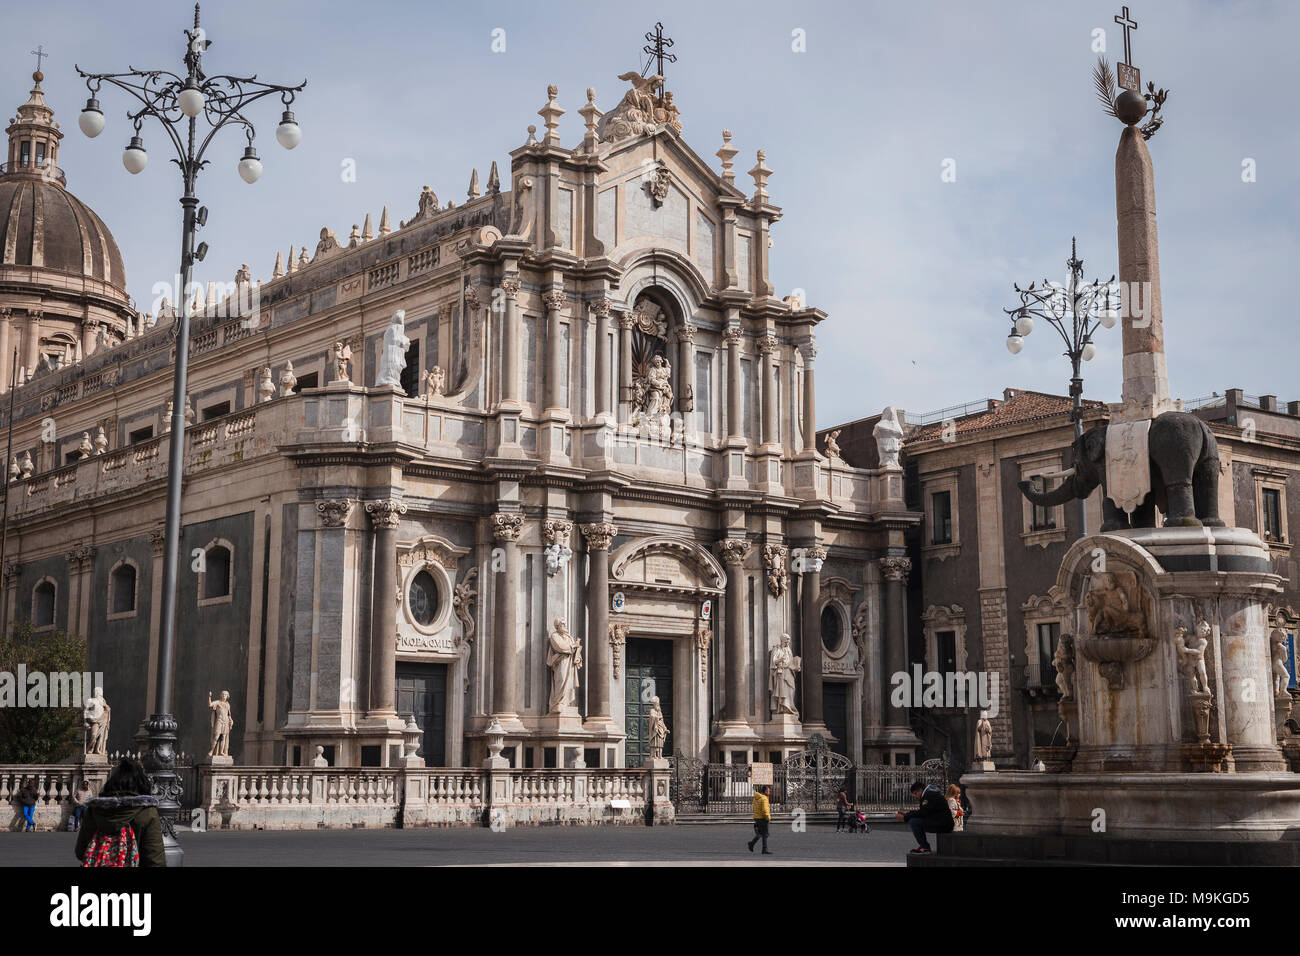 Piazza del Duomo square with the façade of the cathedral and the Elephant Fountain 'u Liotru', symbol of Catania, Sicily, Italy. - Stock Image